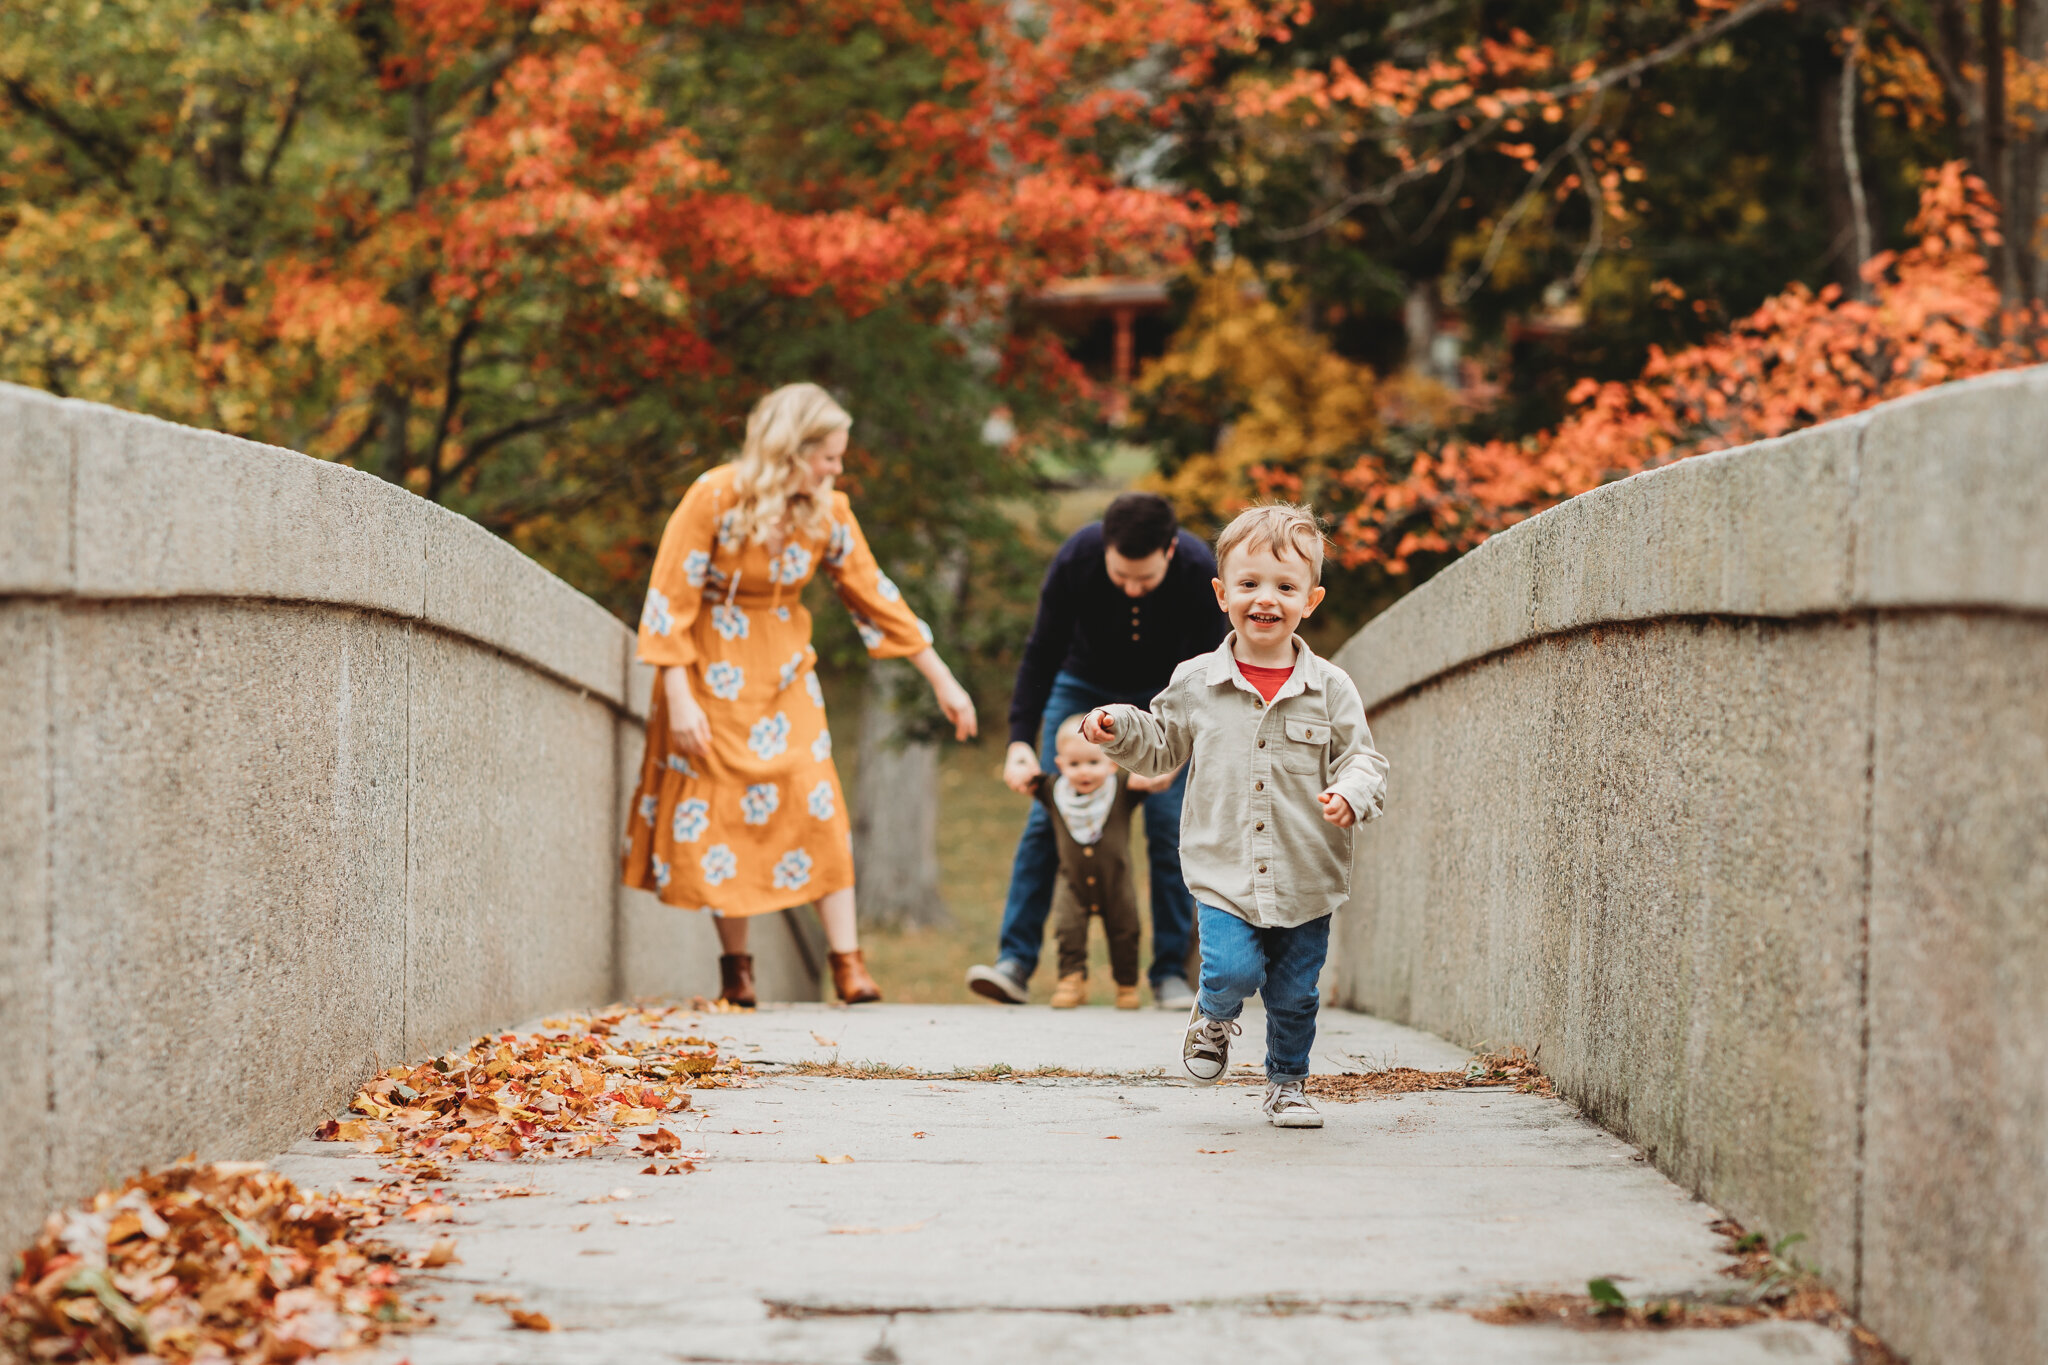 3-year-old running over a stone bridge during the peak foliage season in Massachusetts during his family's photo session. Sudbury family photographer Joy LeDuc shares her top tips for getting a coveted family photo session during this season.